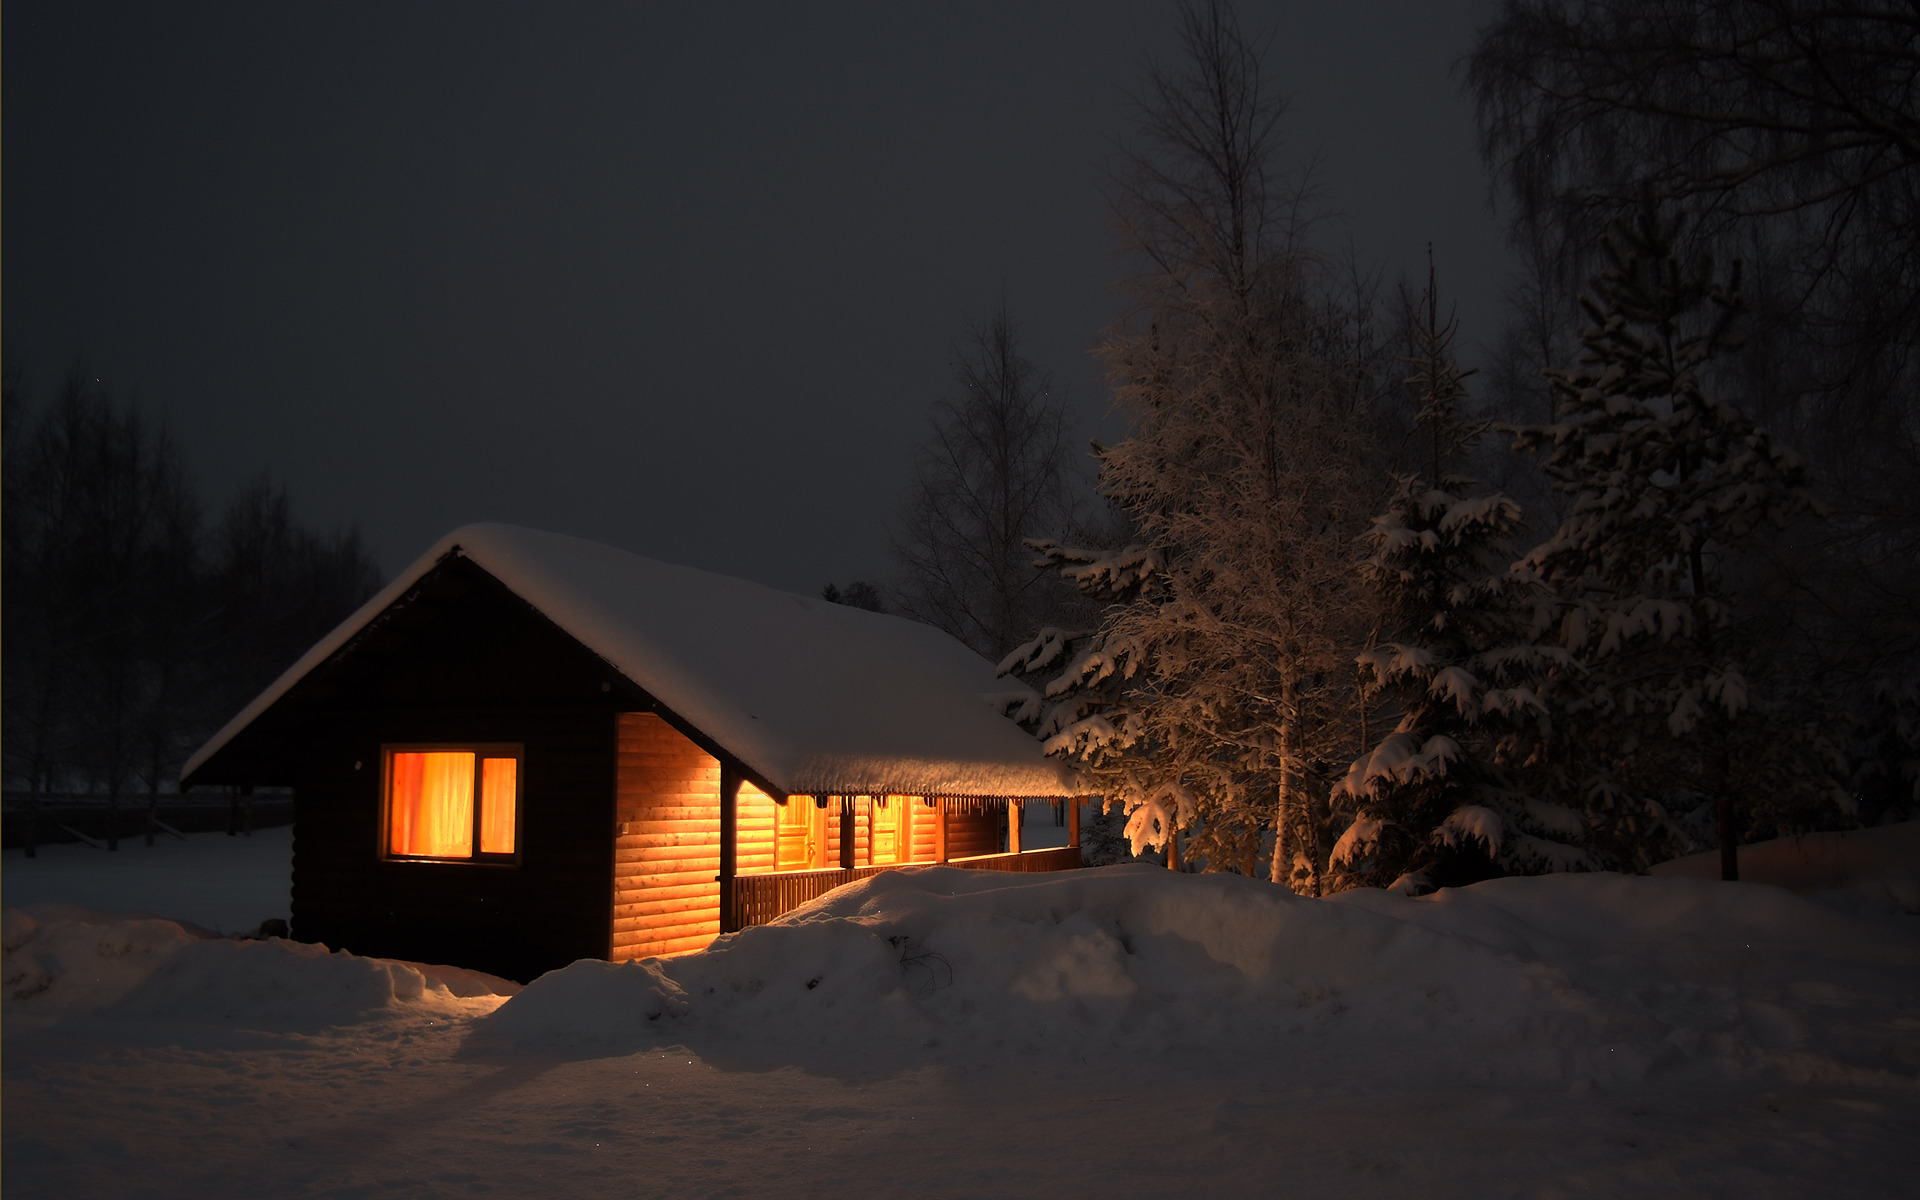 snow on cabin in woods Wallpaper Background 54539 1920x1200